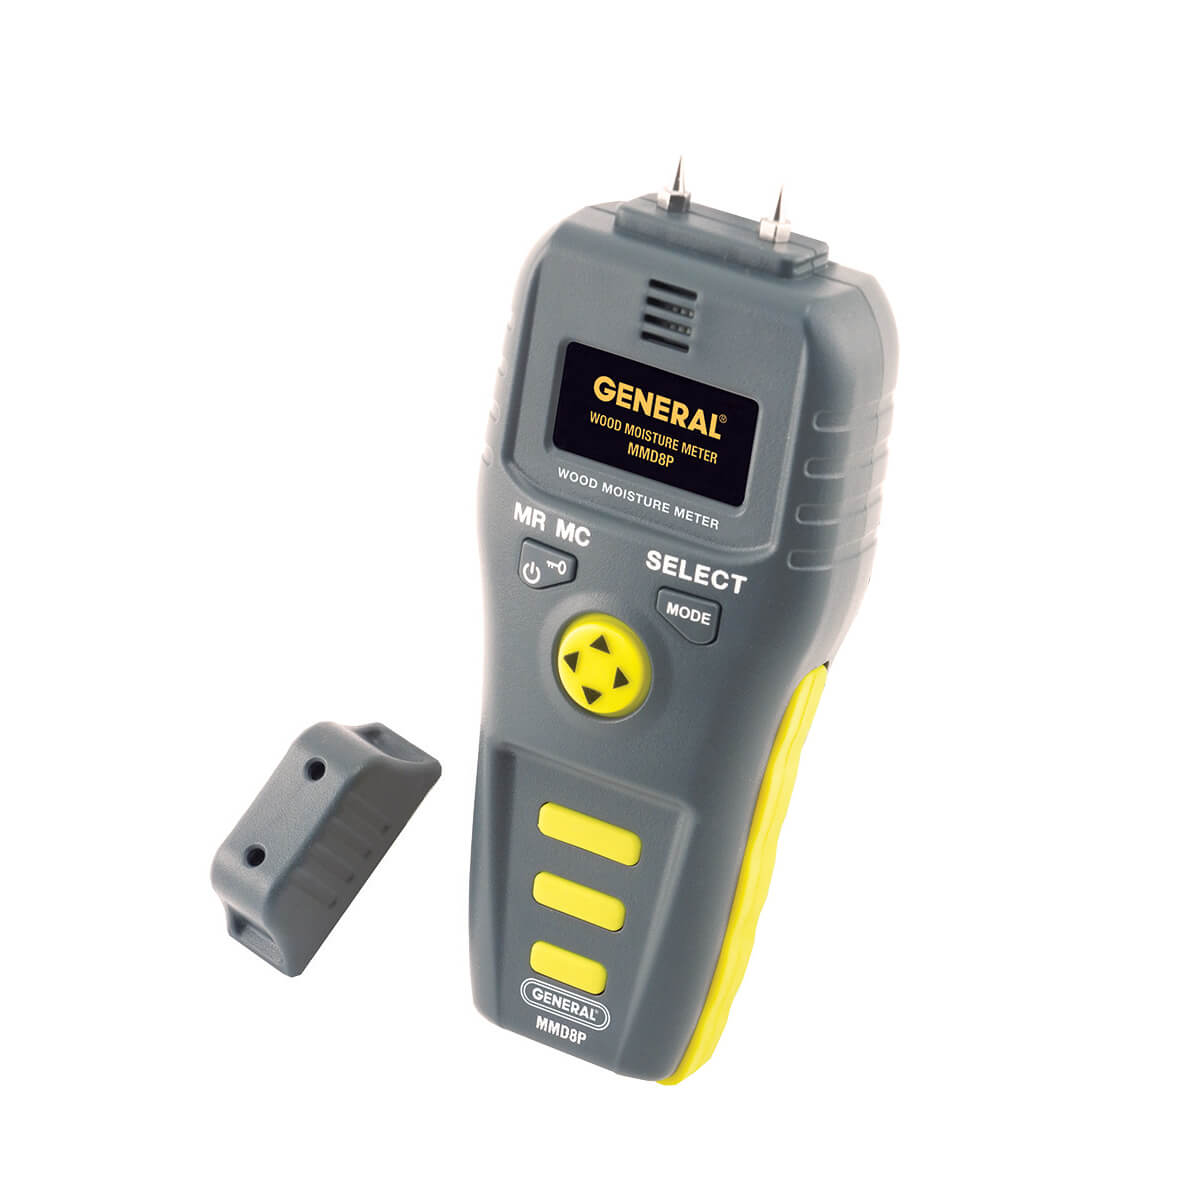 General Tools MMD8P Multi-Species Wood Moisture Meter High Precision